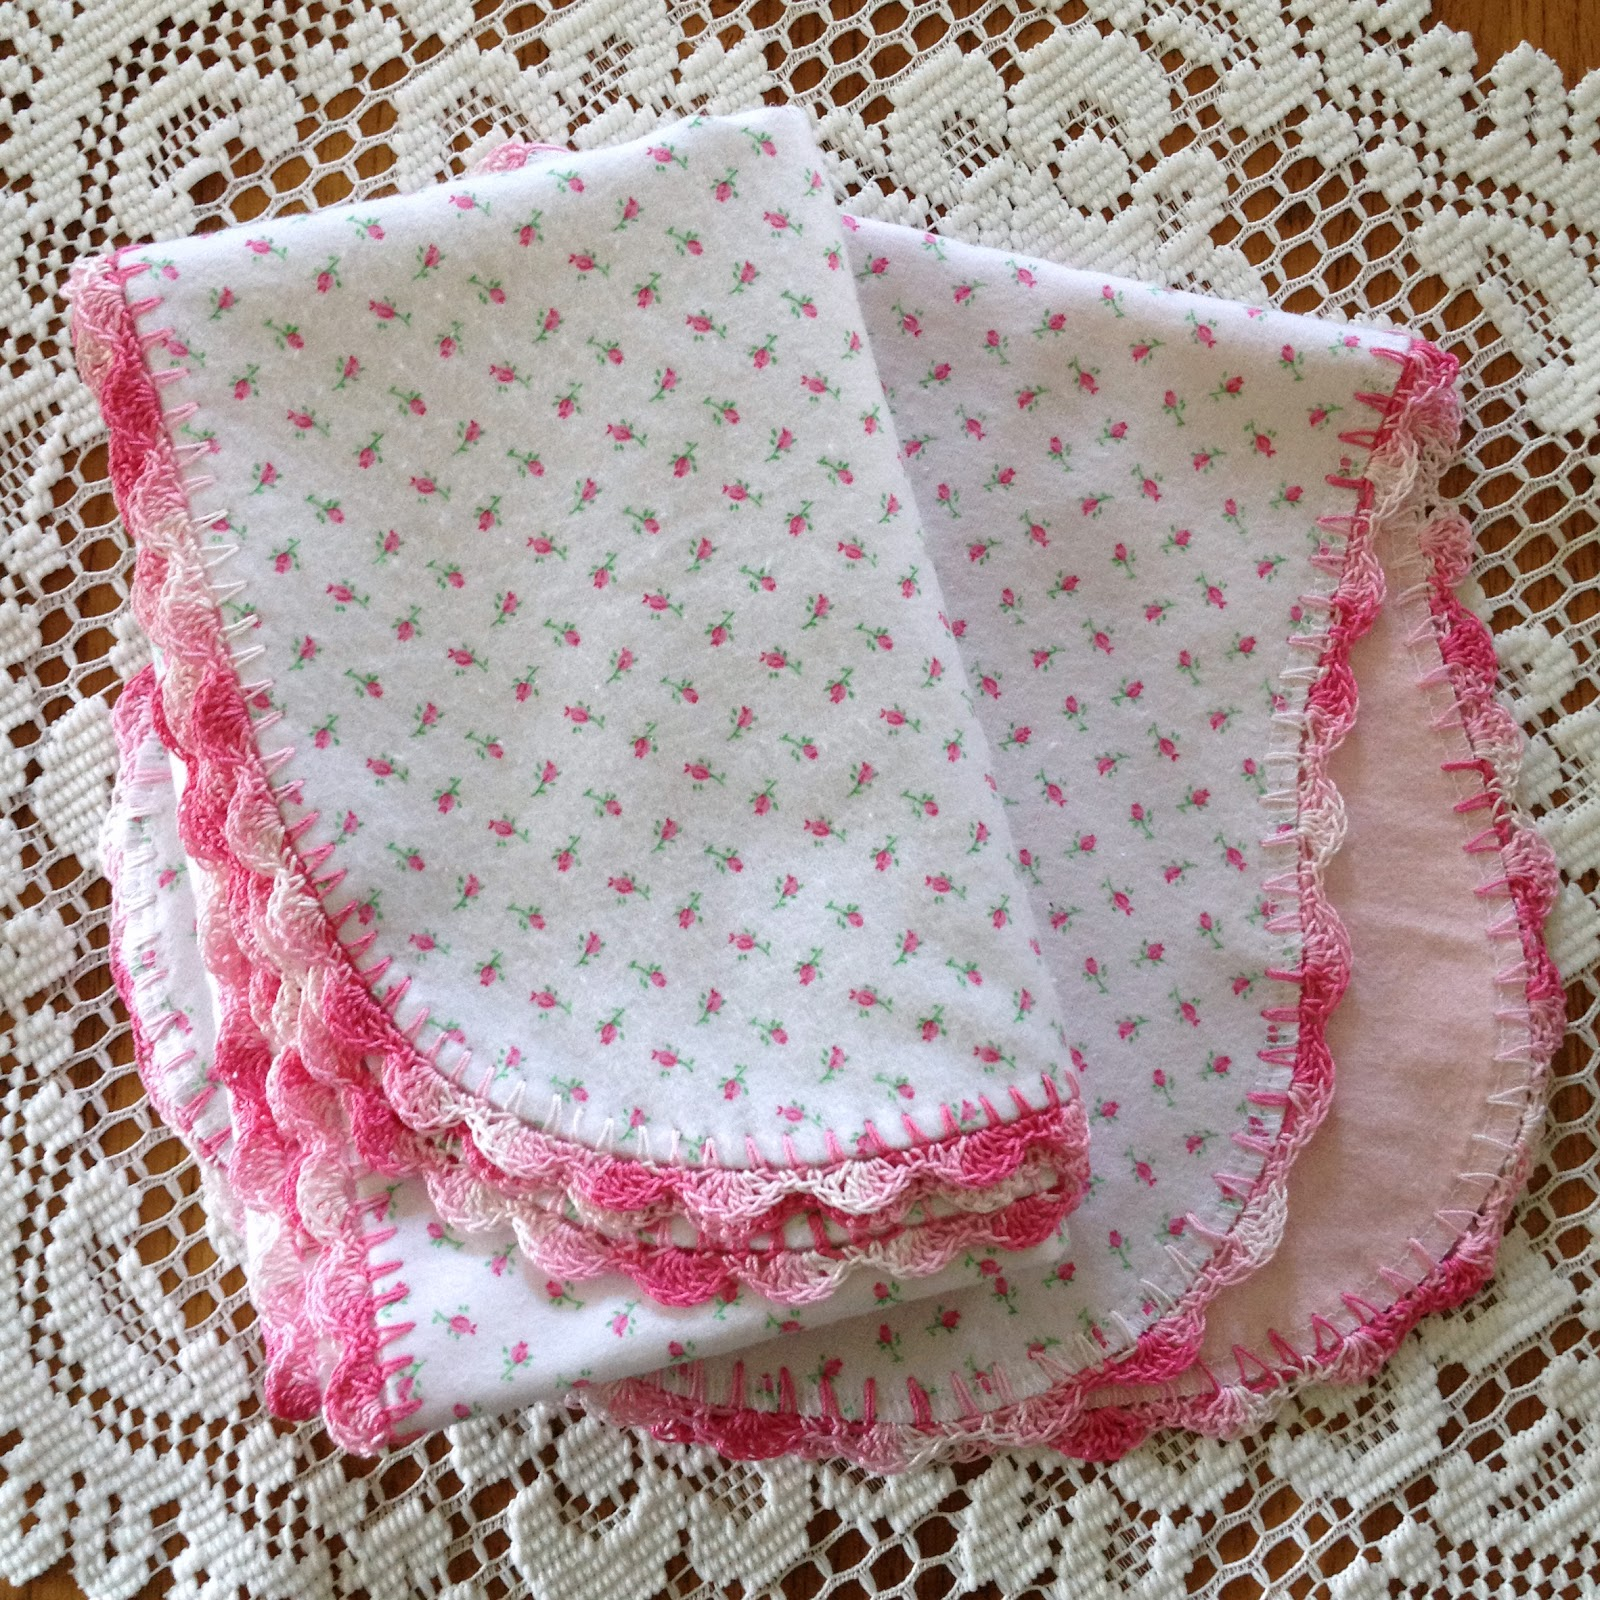 Crocheting Edges On Baby Blankets : The pea green baby set is also finished! I just love the little ...